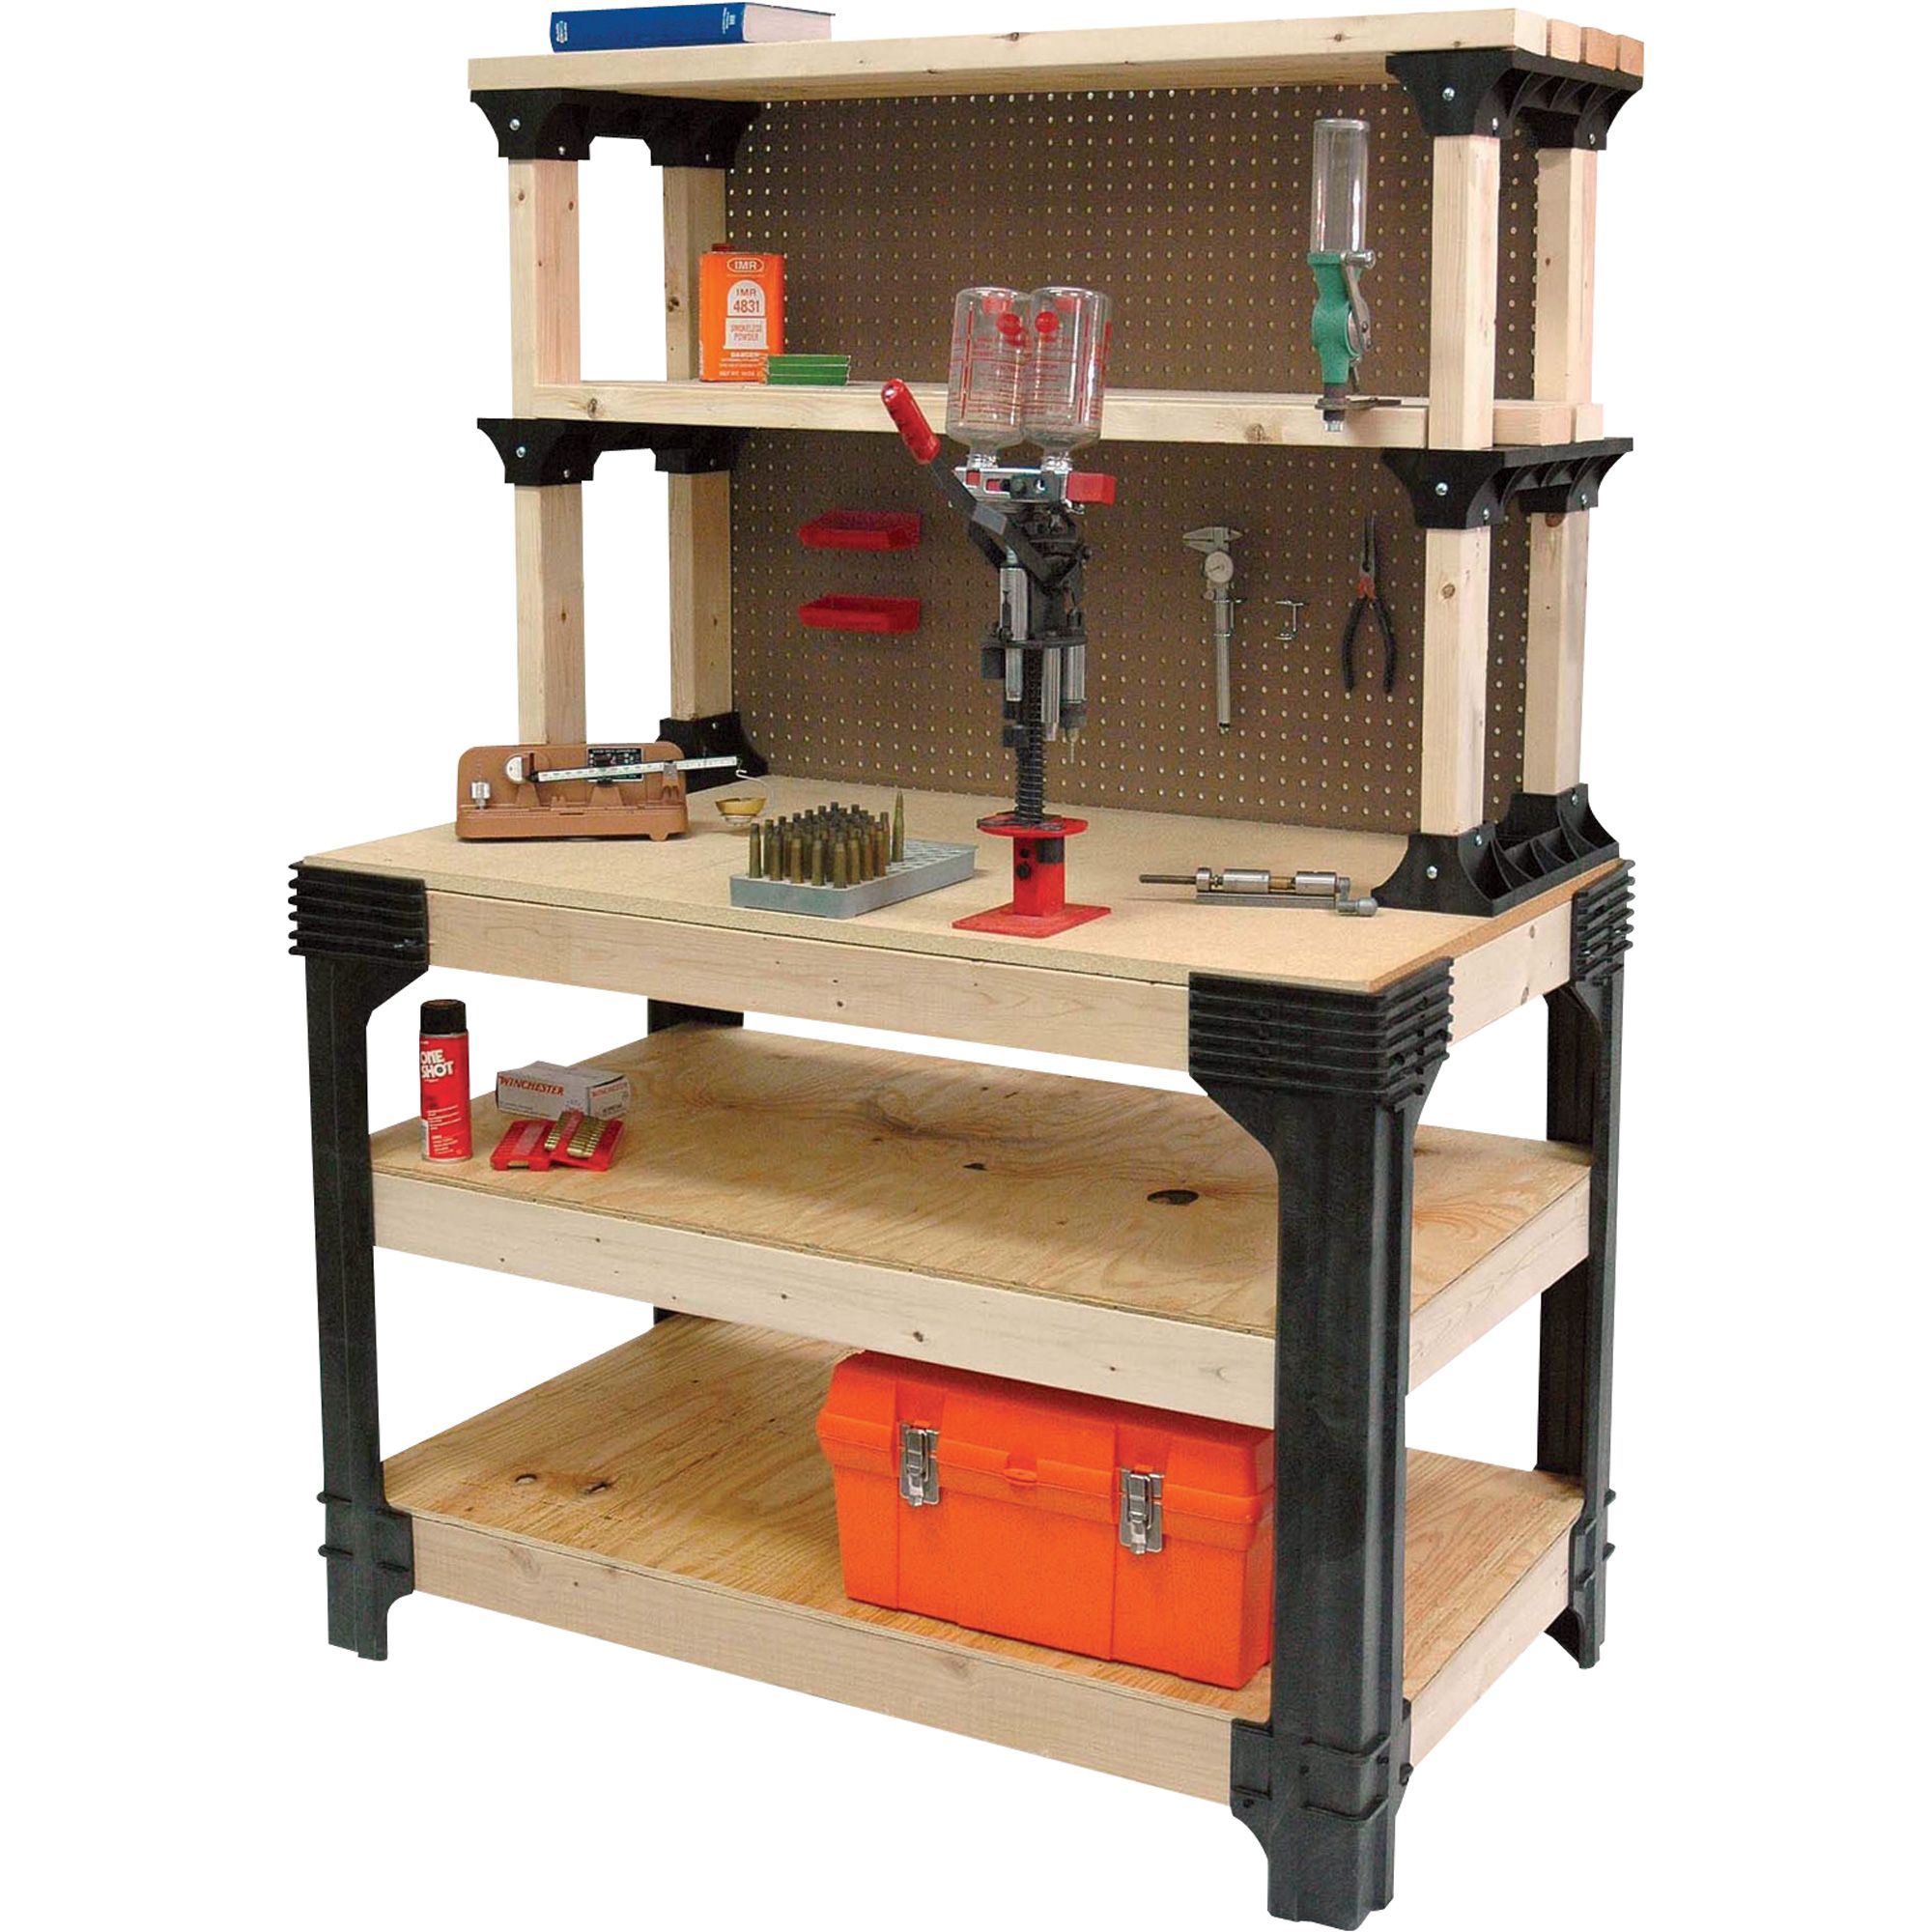 2x4 Basics AnySize Workbench Kit With ShelfLinks Model